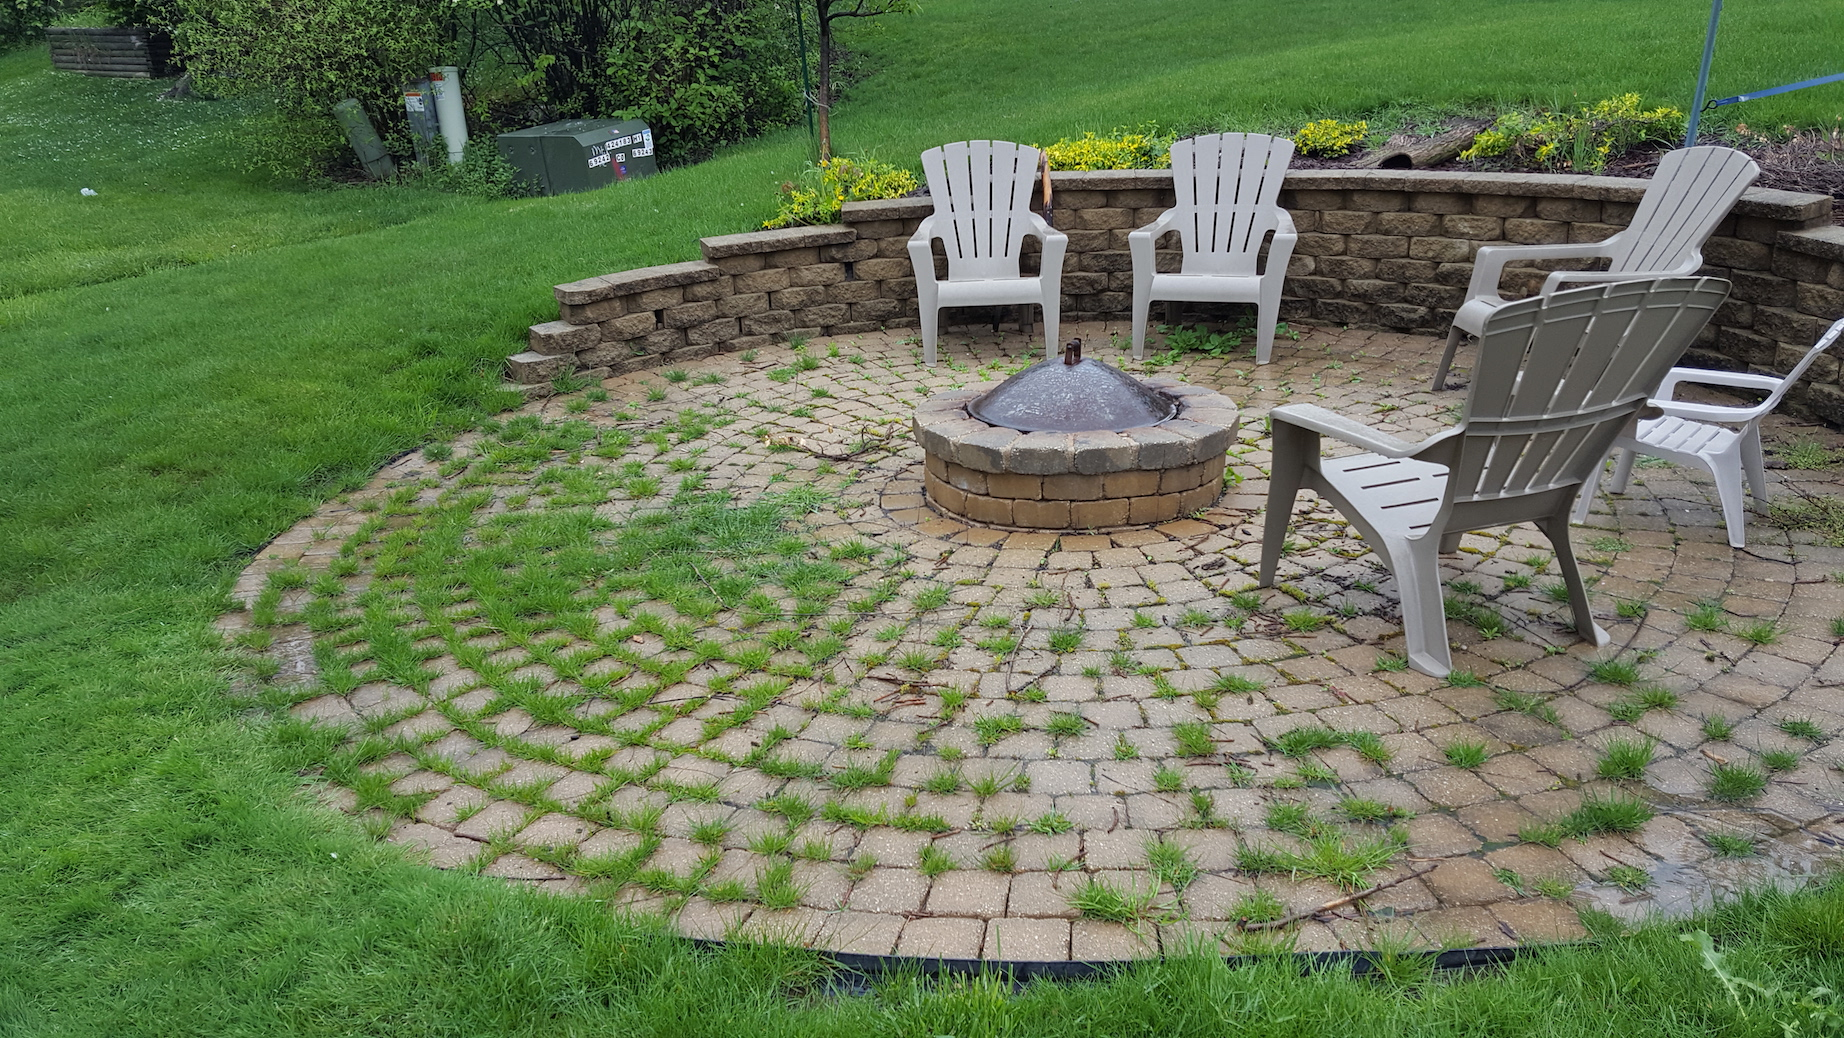 Weeds In Brick Paver Patio Joints Suck! - IL Stone & Brick ... on Backyard Brick Pavers id=77640